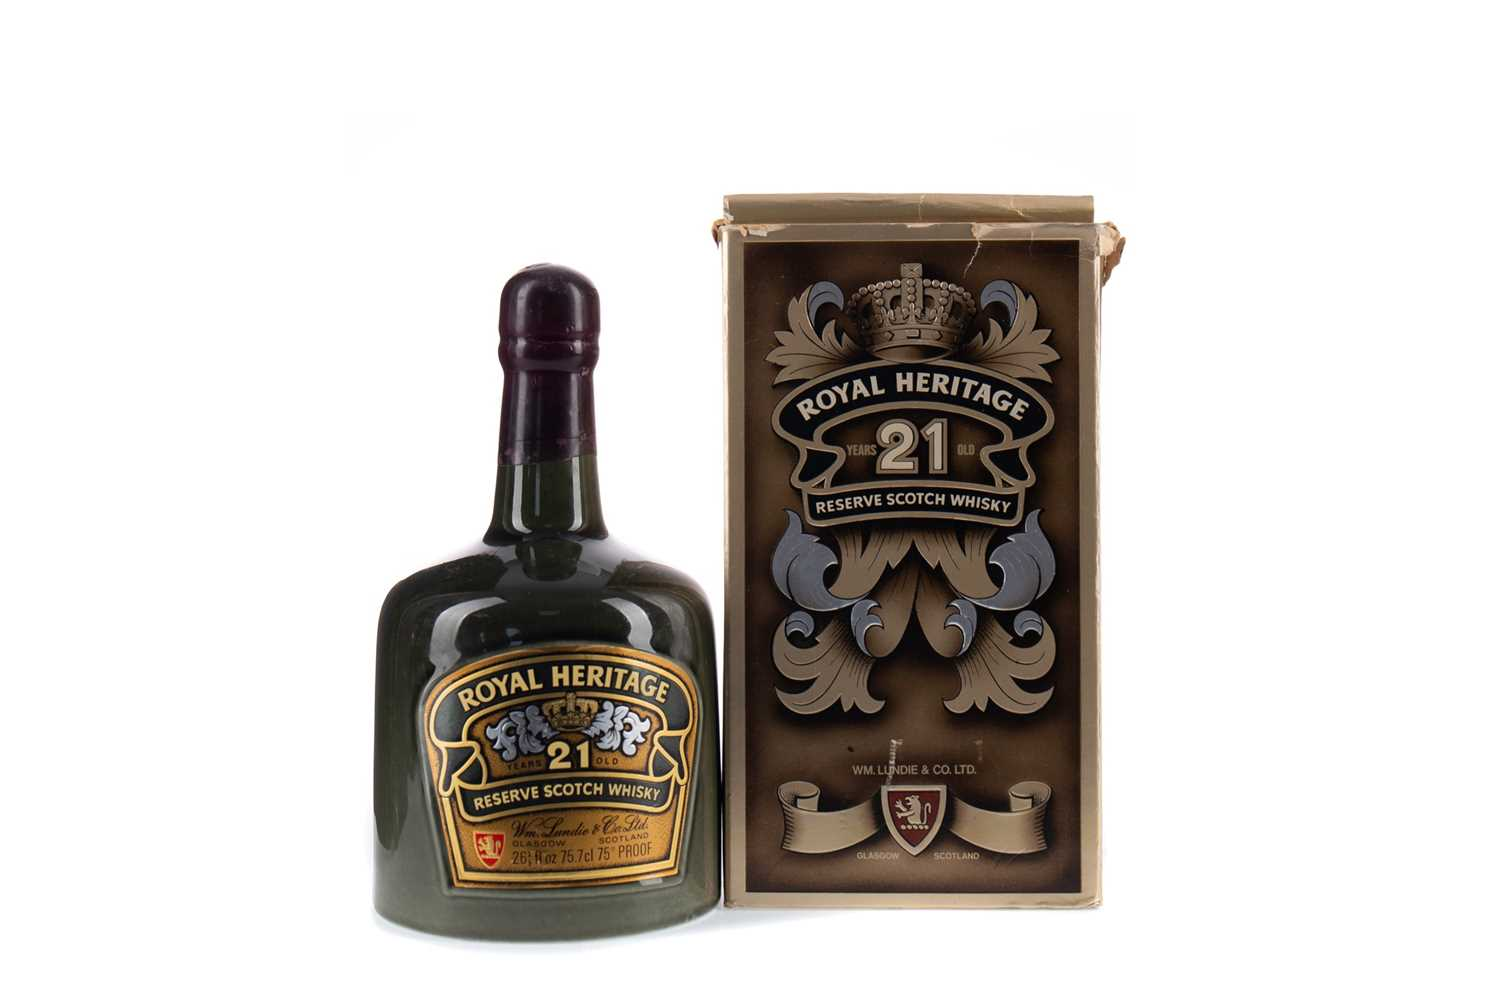 Lot 67 - ROYAL HERITAGE 21 YEARS OLD